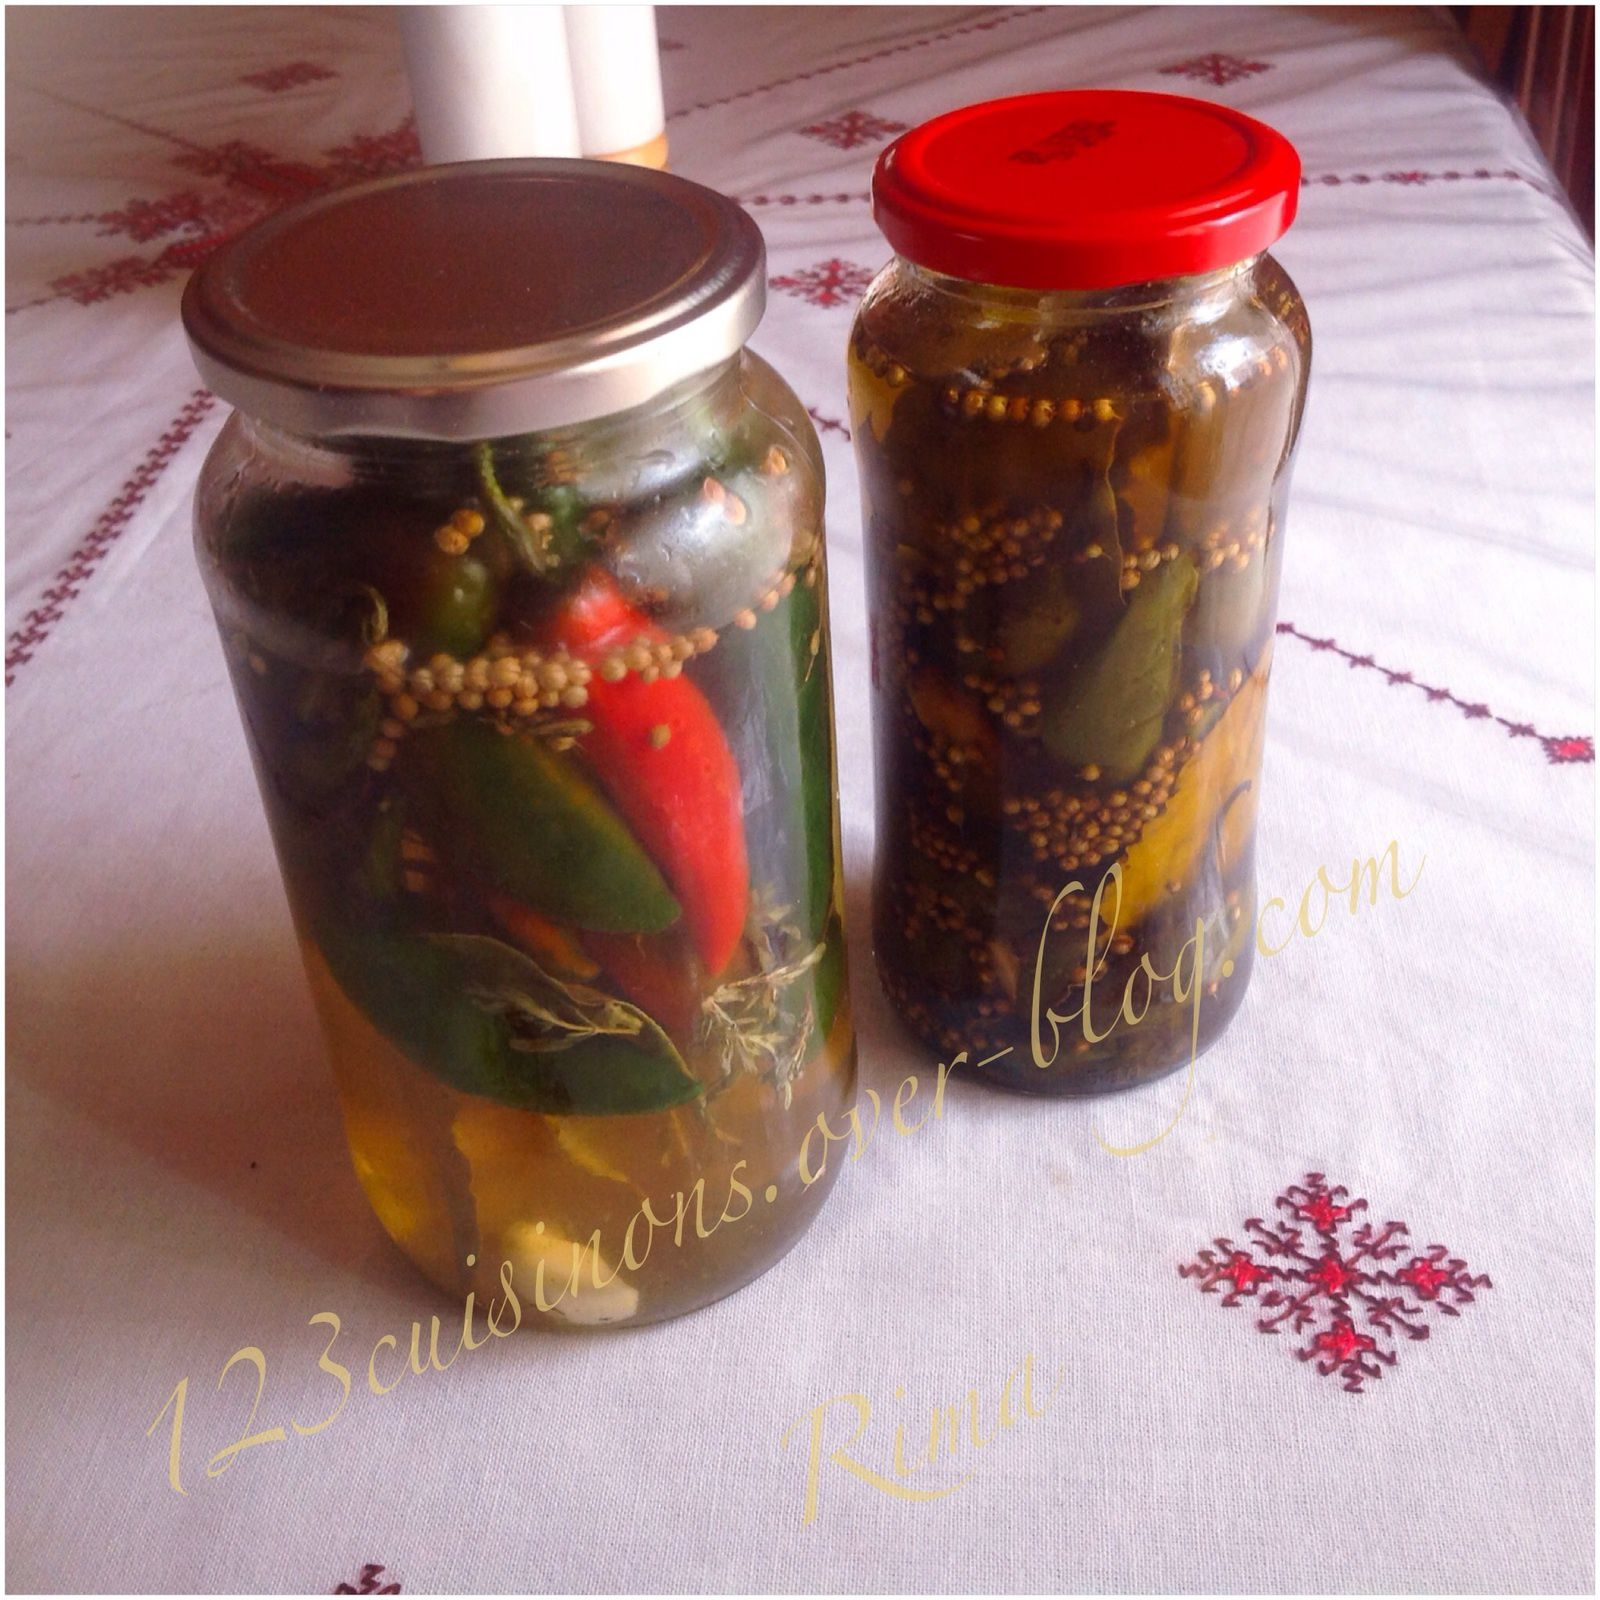 Piments en conserves